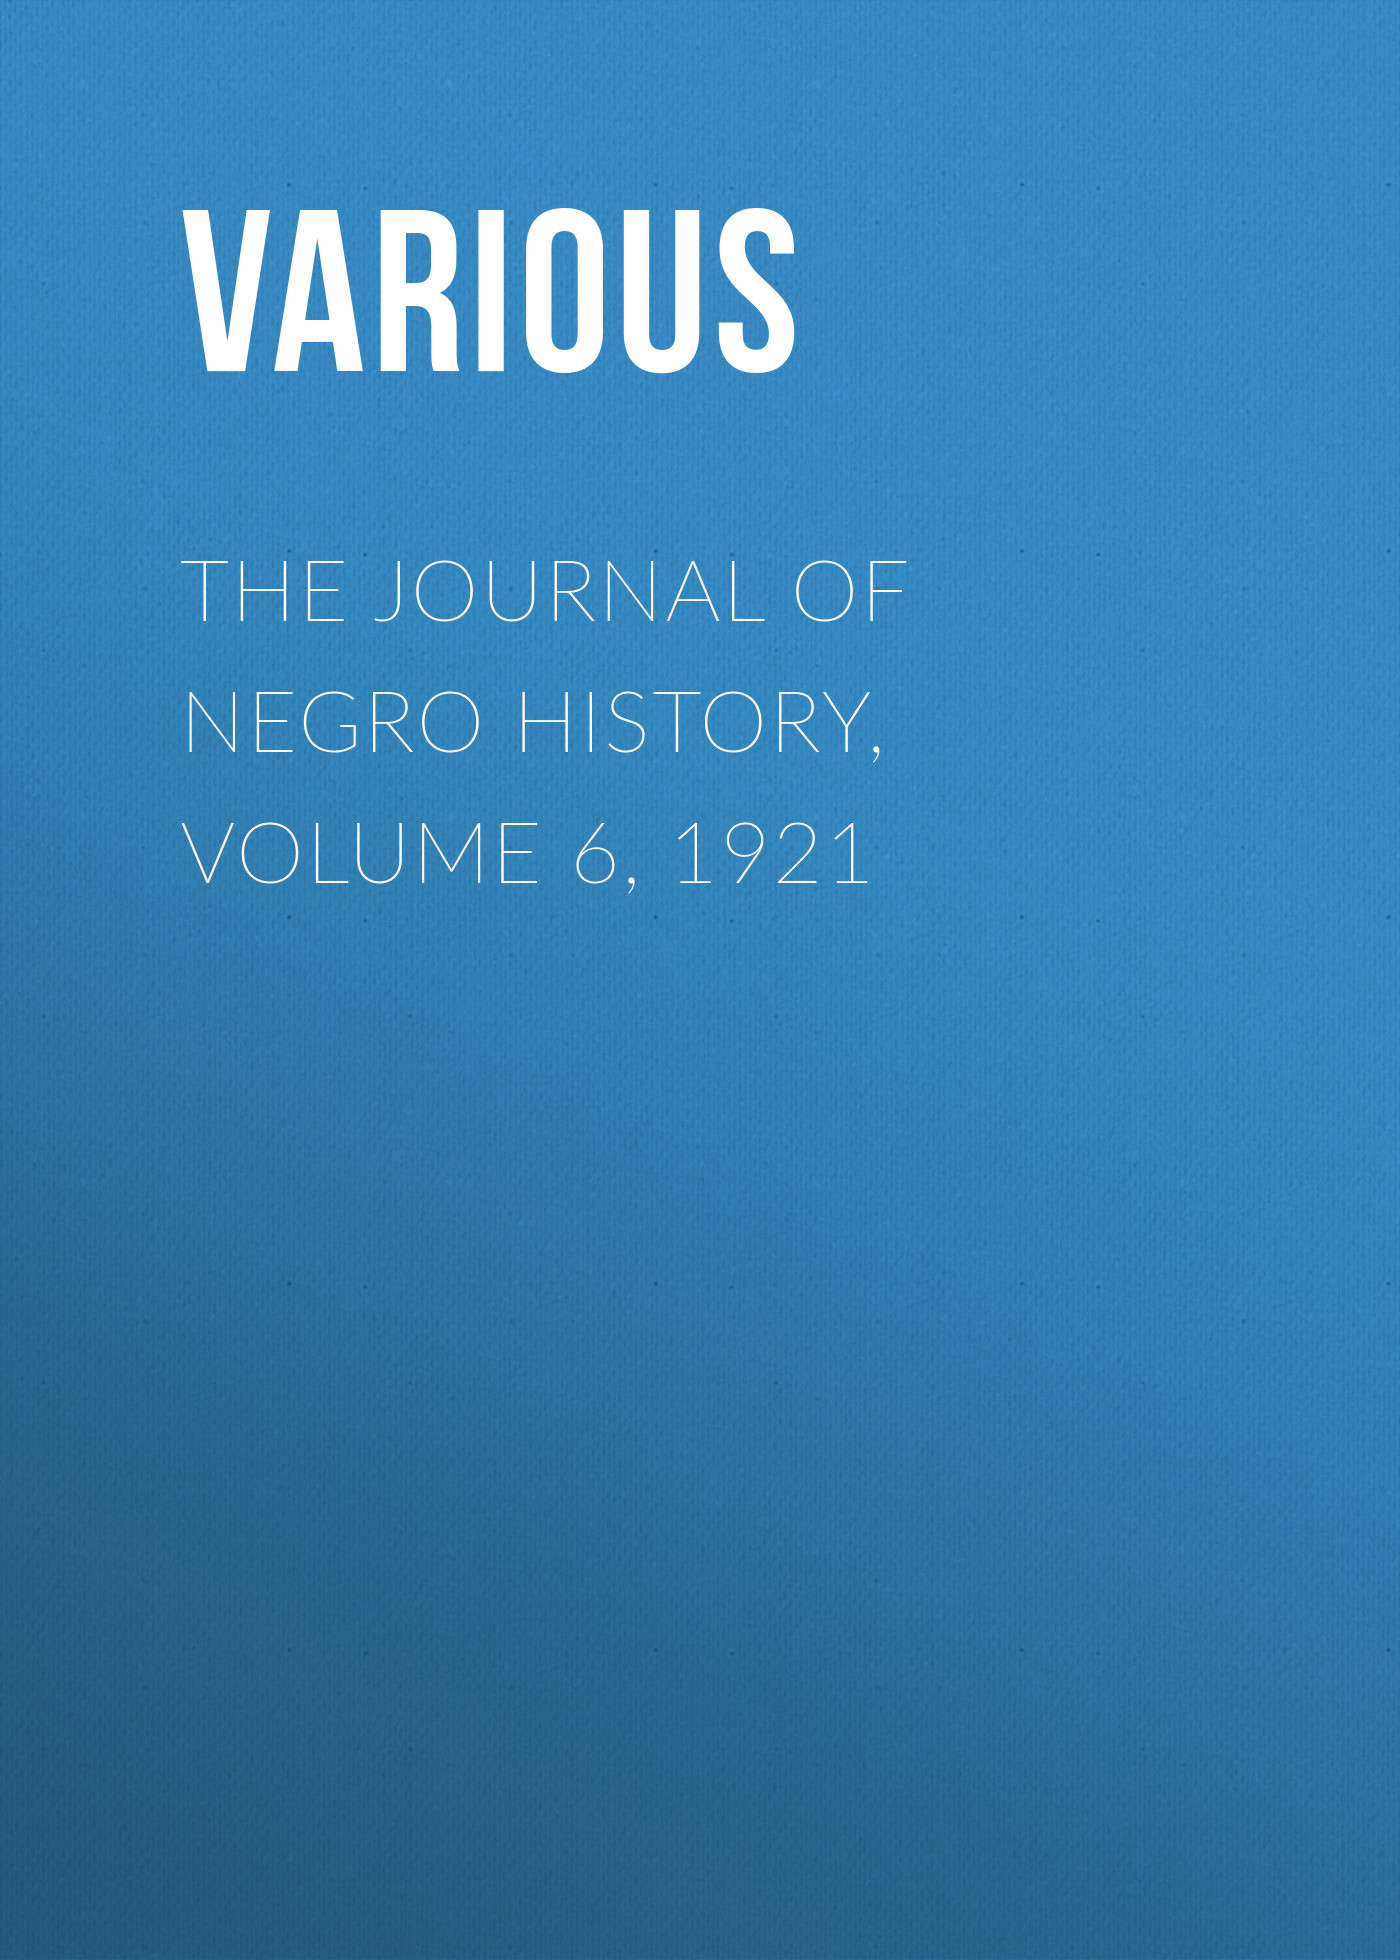 Various The Journal of Negro History, Volume 6, 1921